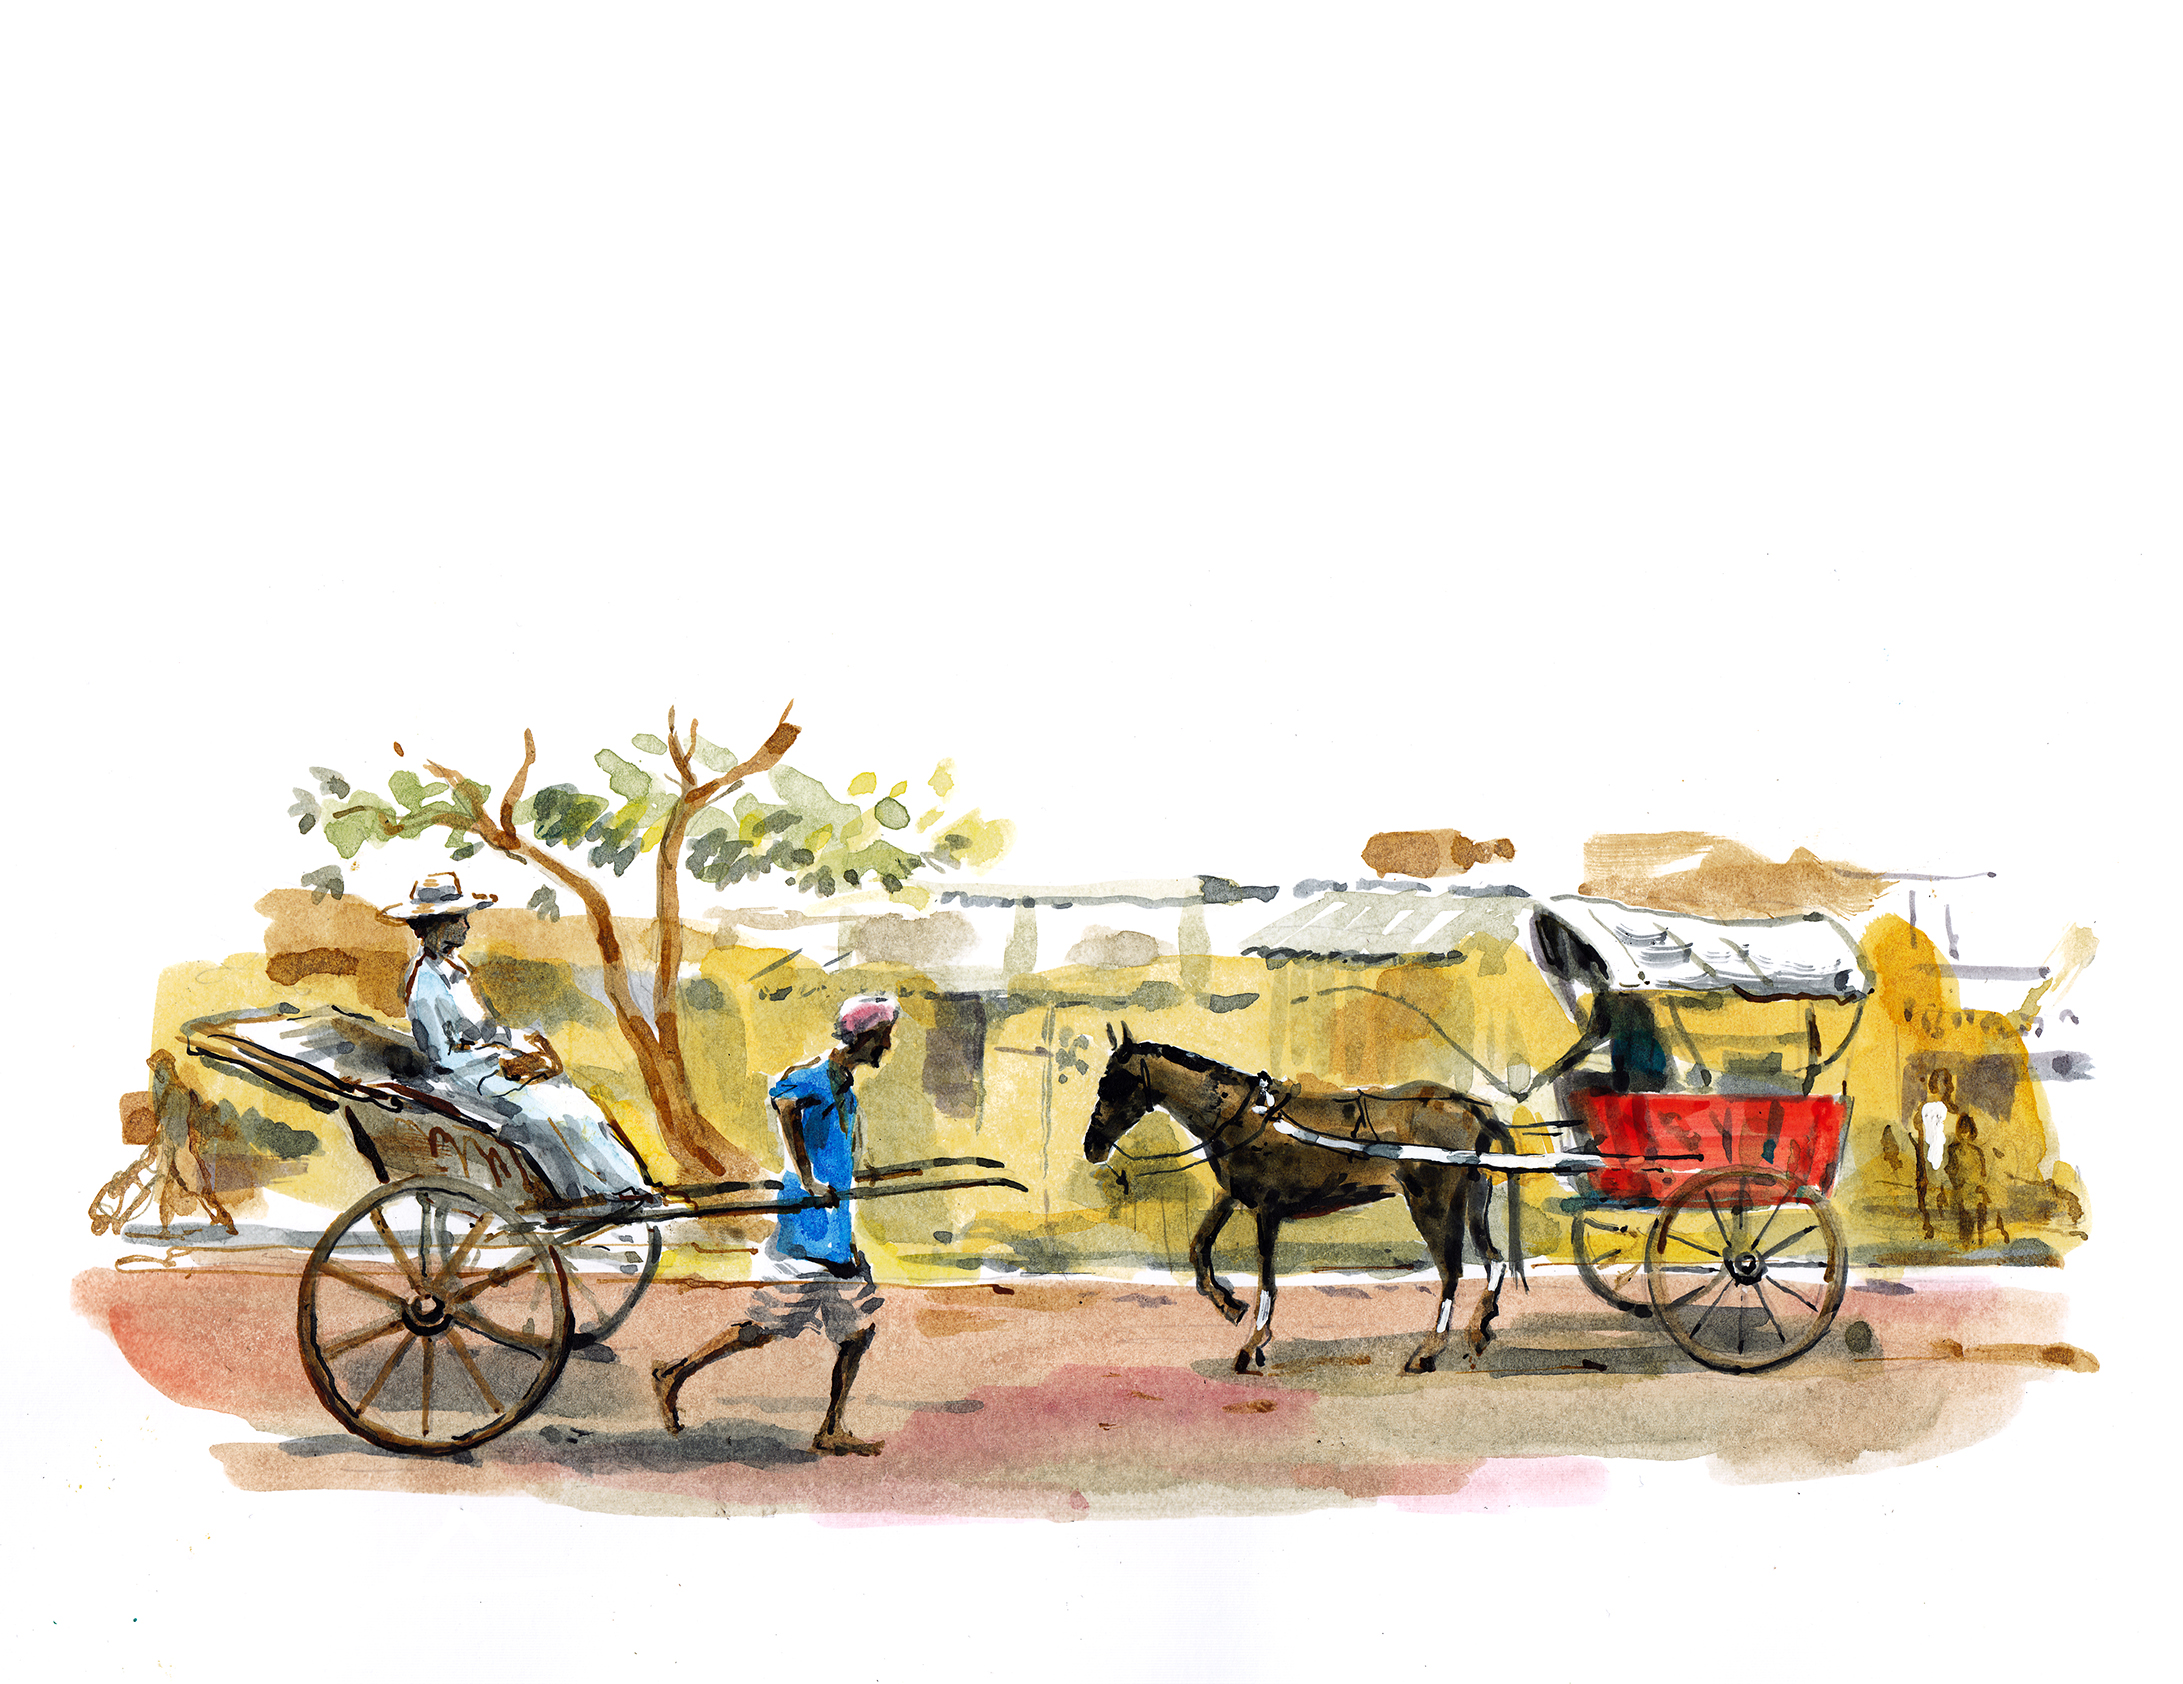 Tanga and rickshaw